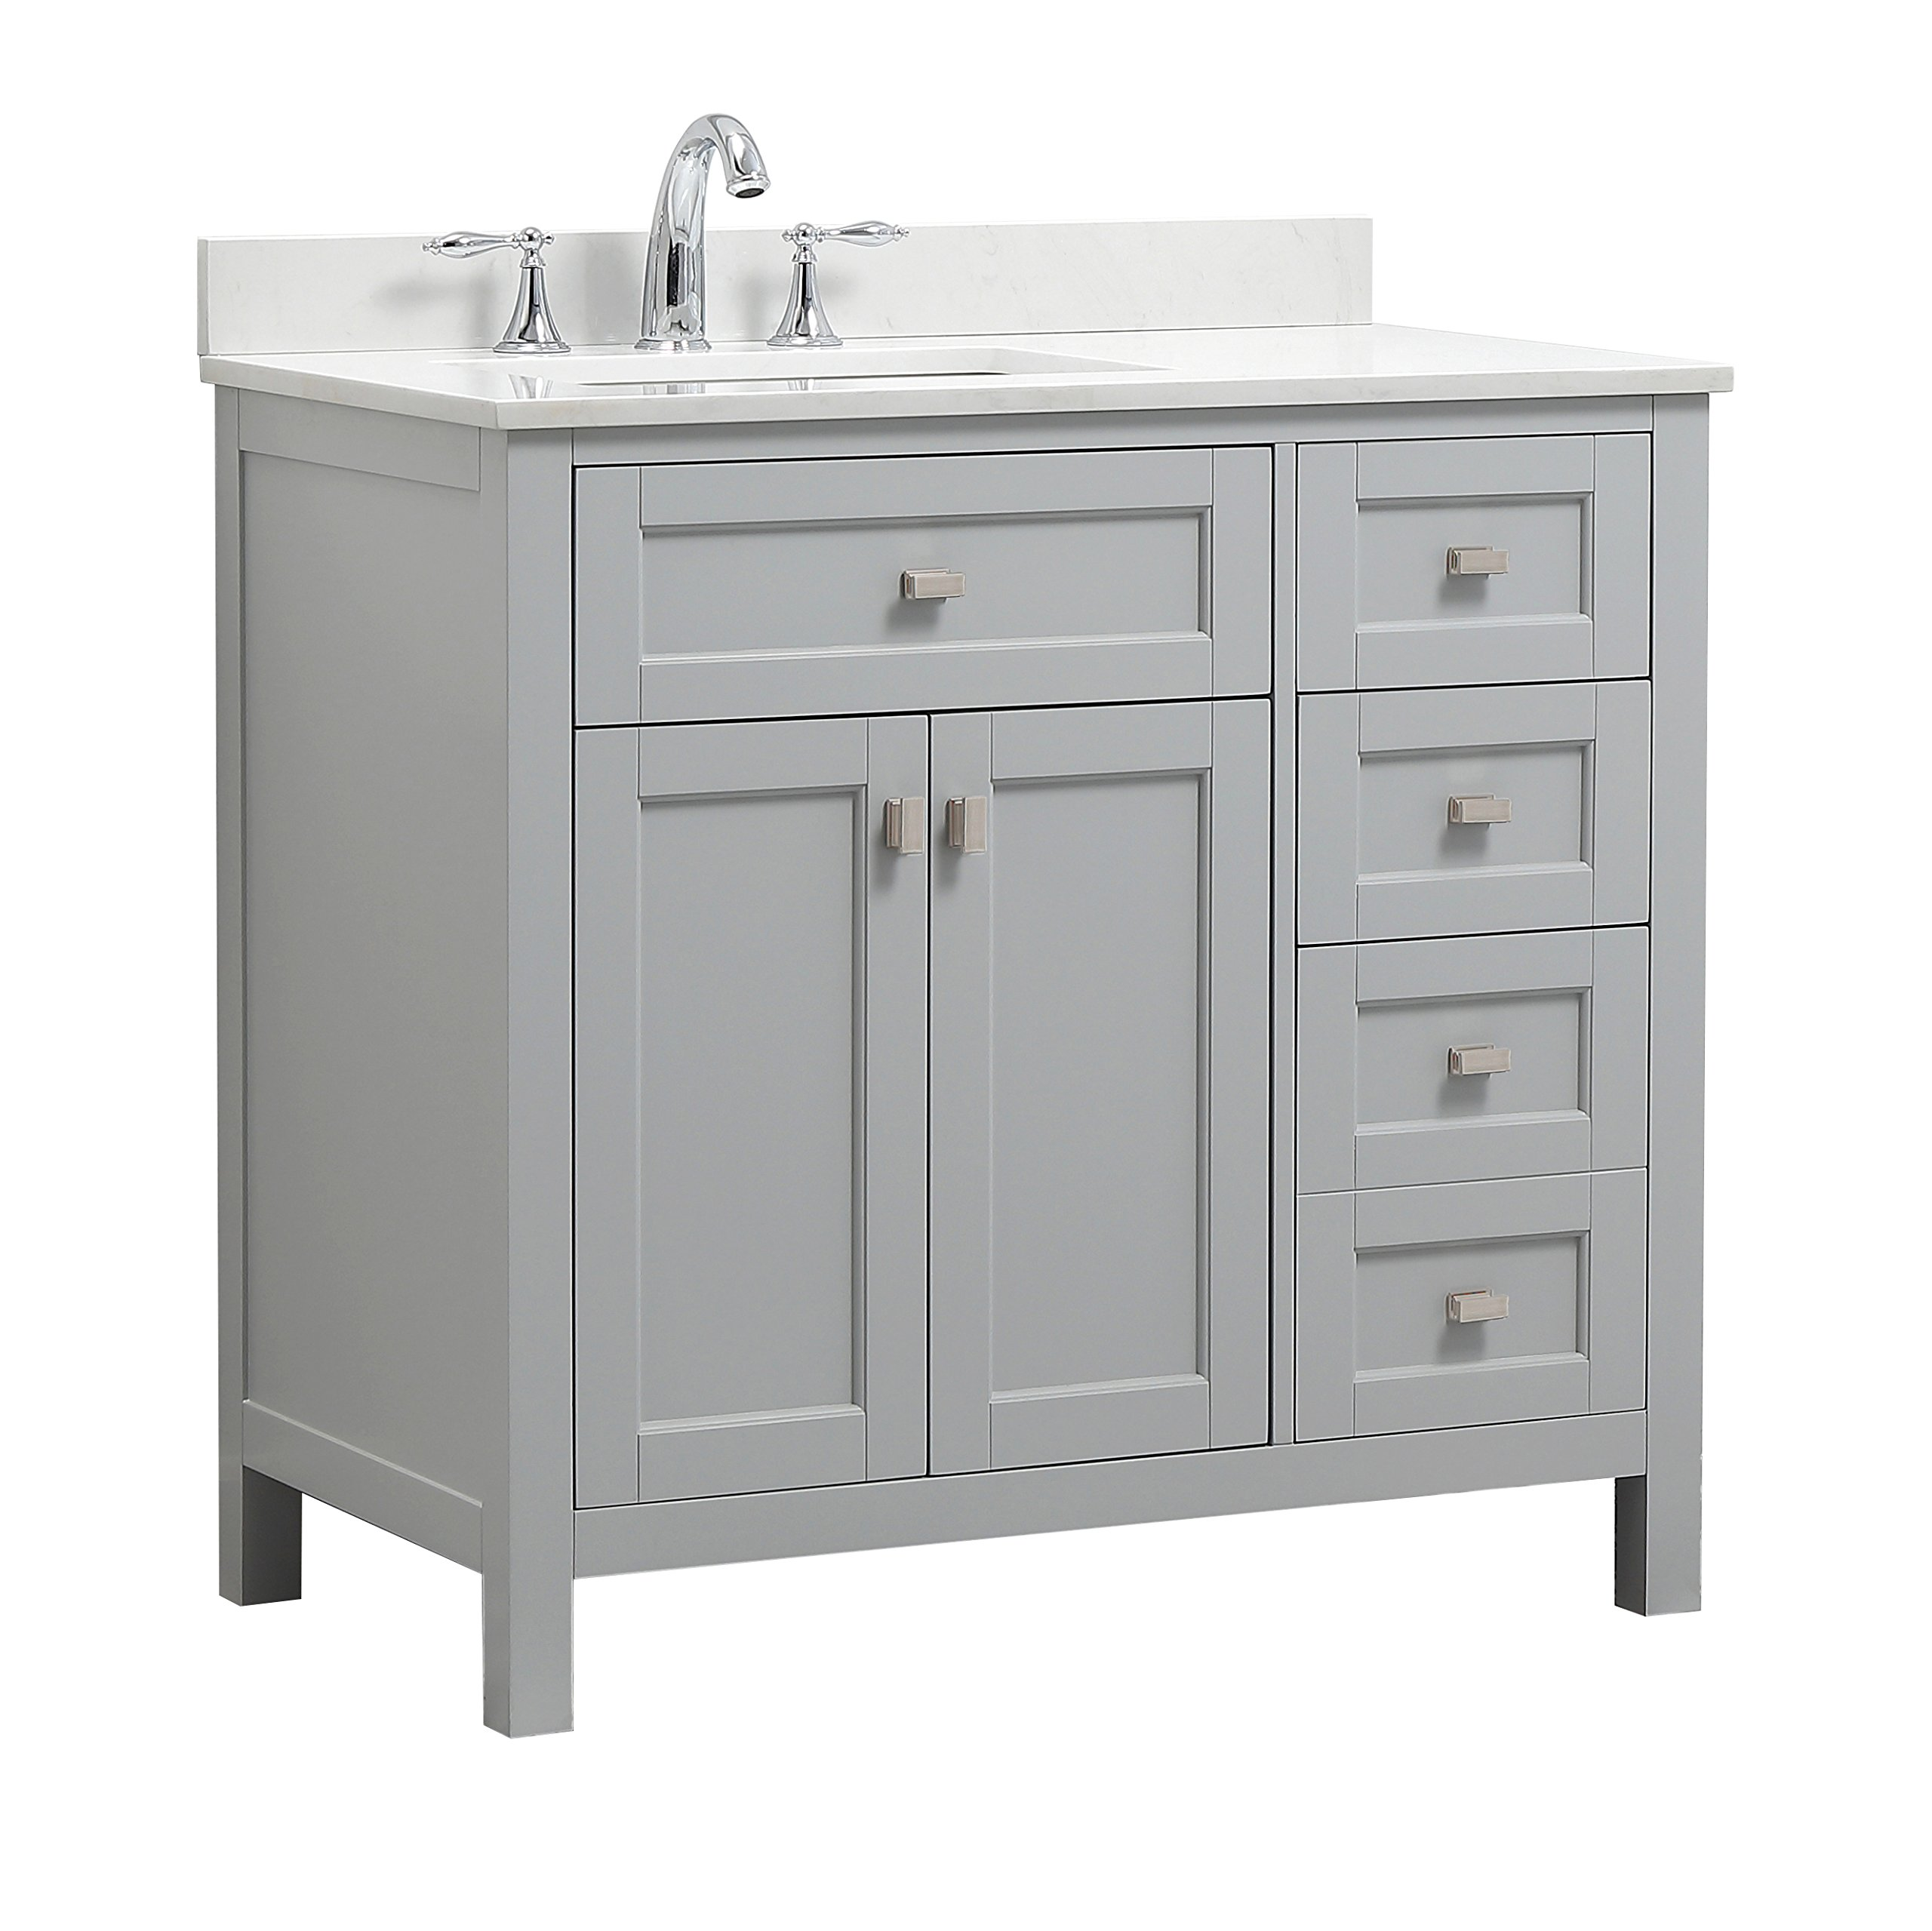 CAHABA CA101013 Juniper Collection Vanity with Top, Dove Grey Vanity, White Top, White Basin